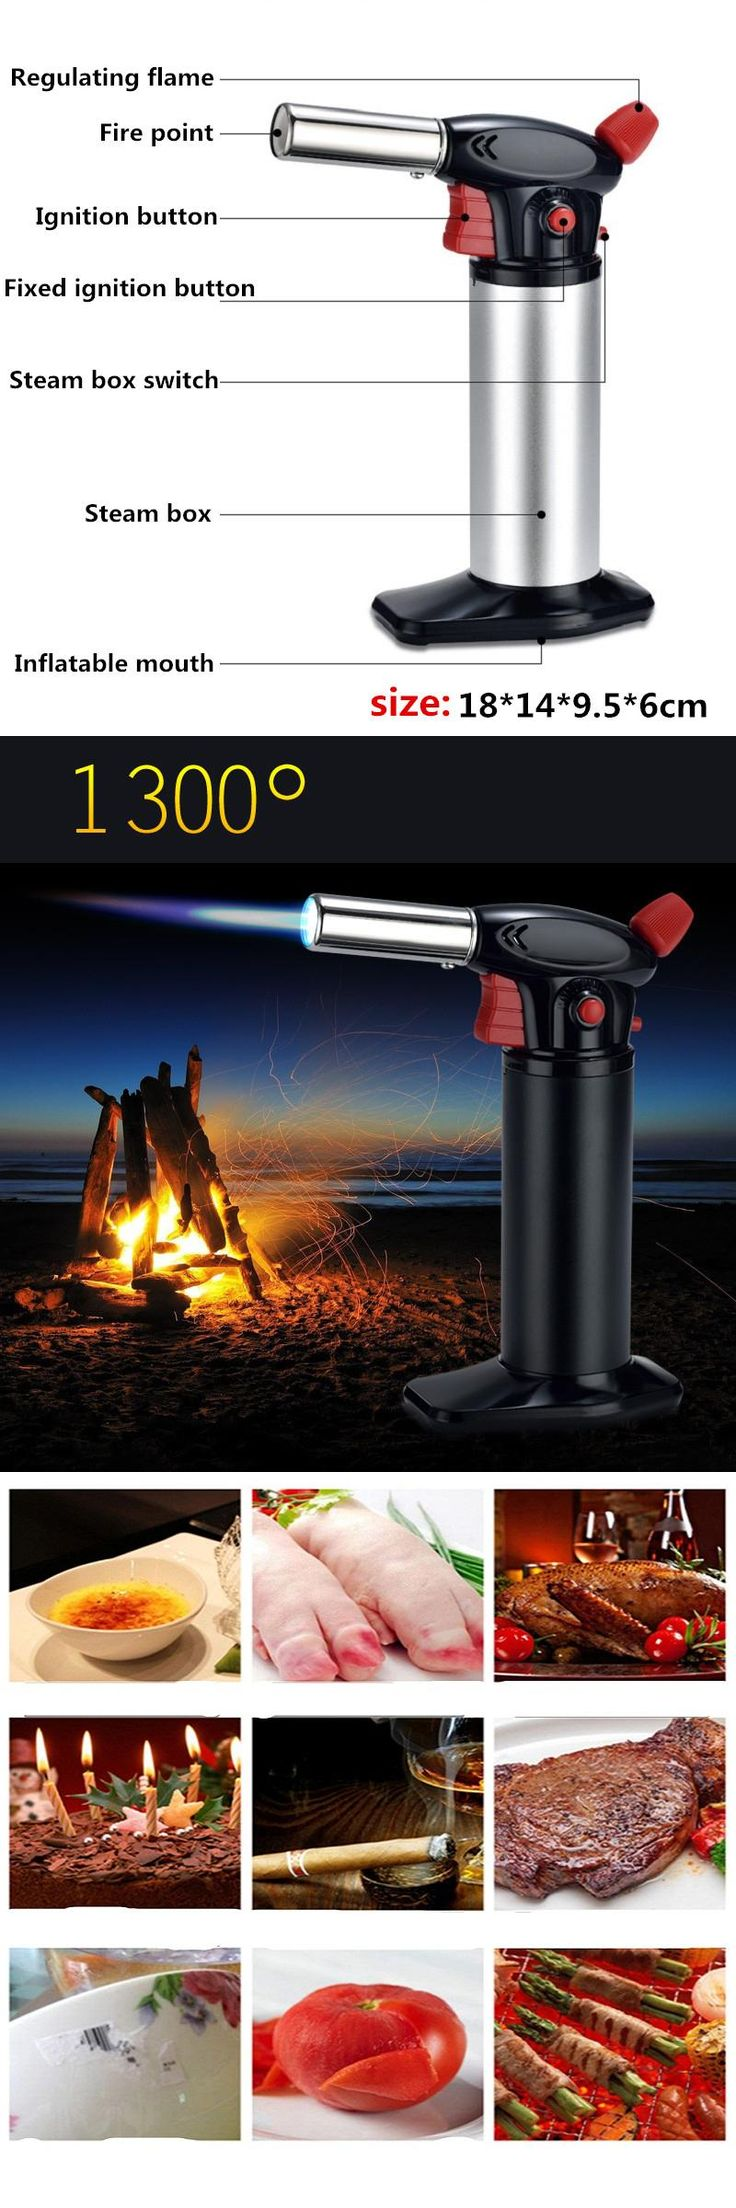 Jet 1300 C Welding Torch Lighter Cigar Cigarette Lighter Roasting Fire Gun Super Firepower High Temperature Burning Lighter 7003